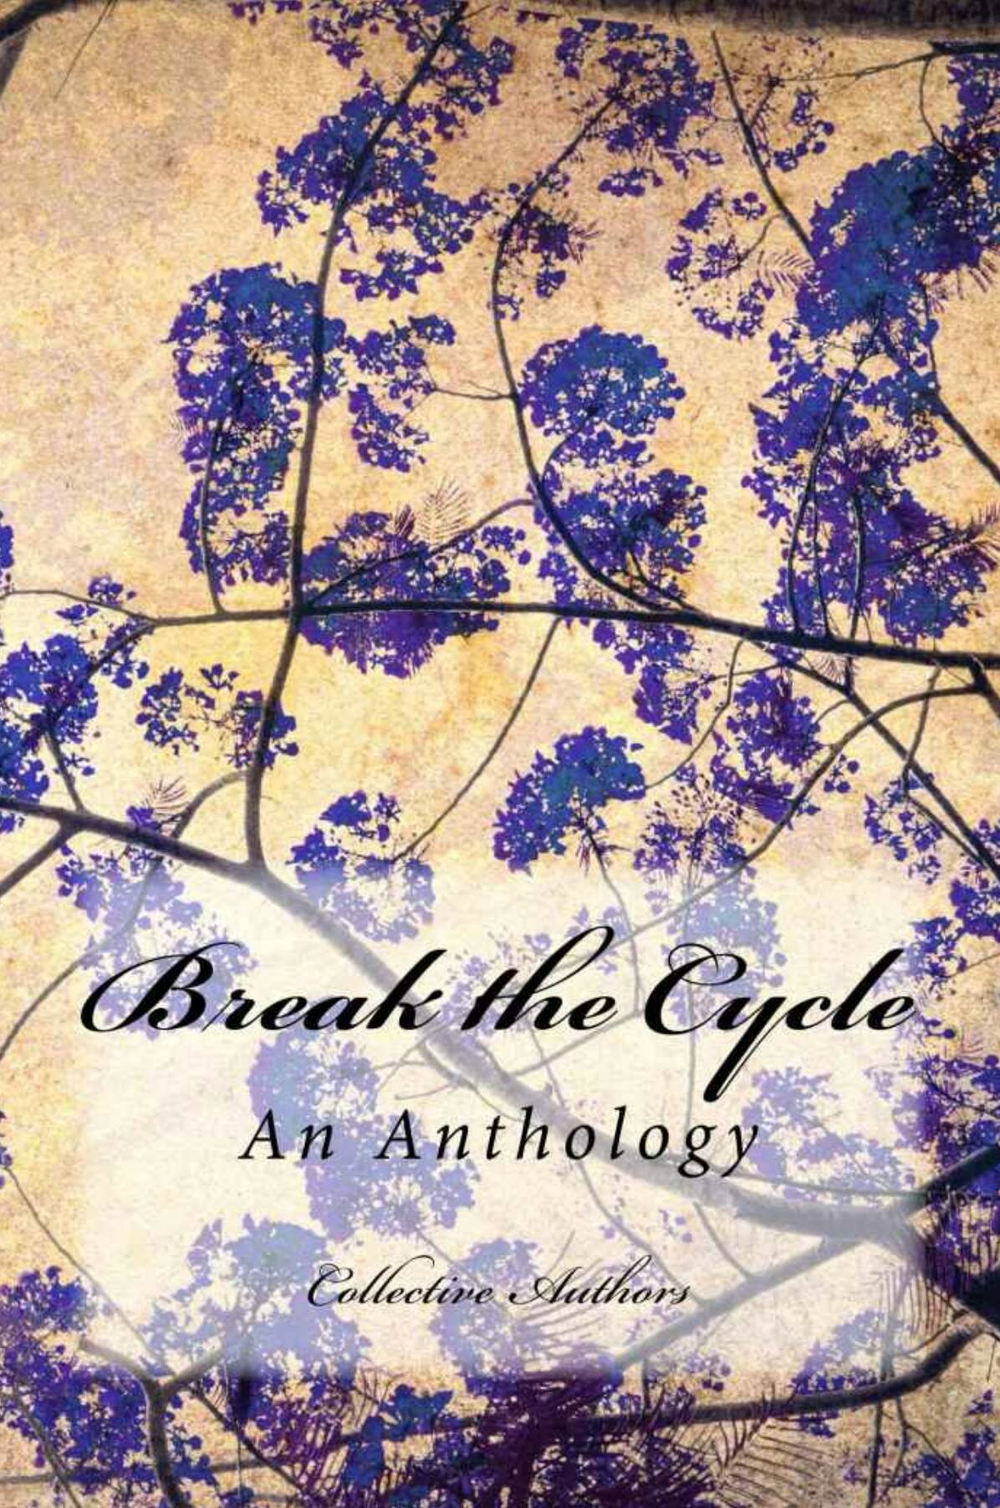 BREAK THE CYCLE, an anti-bullying anthology - 100% goes to NSPCC  Featuring short stories by new and established authors, their chosen charity is the NSPCC. This collection of short stories explores bullying from a variety of perspectives. Teacher. Sister. Brother. Friend. Parent. Social worker. Human being. Victim. Perpetrator. All of life is here, in all its inspiring, thought-provoking, devastating glory. So how do we break the cycle? Clearly, it's not going to be easy… For some, there is no recovery. No hope. For many, their light fades all too soon at the hands or words of bullies. BUT. There are others who fight. By stroke of luck or courage, some find a way out – or someone spots their misery. Bullying can be at its most devastating when we're young and most vulnerable, but other tales demonstrate how bullying may strike in adult life too. All proceeds of this book will be donated to the NSPCC, the UK children's charity. Bullying needs to stop. Full stop. Please help by donating to the NSPCC today, or by buying the Anthology. Break the Cycle is a book all about bullying, and what it will take to stop it in its tracks. It contains a collection of short stories, each exploring bullying from a different angle. Let's stop it now. Make a donation here --> https://www.nspcc.org.uk/what-you-can-do/make-a-donation/